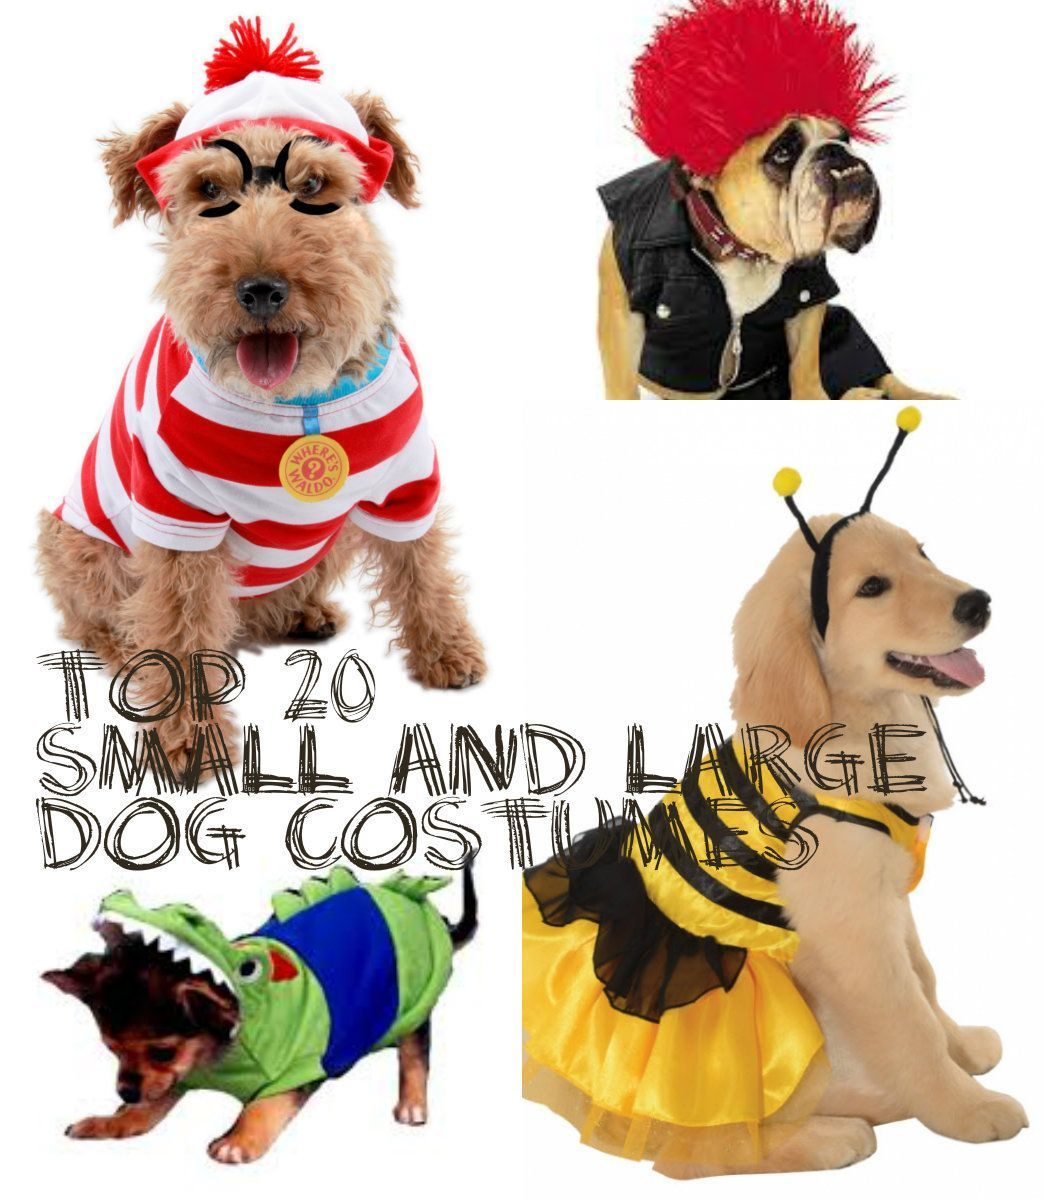 Amazing Top 20 Dog Costumes. A Must See